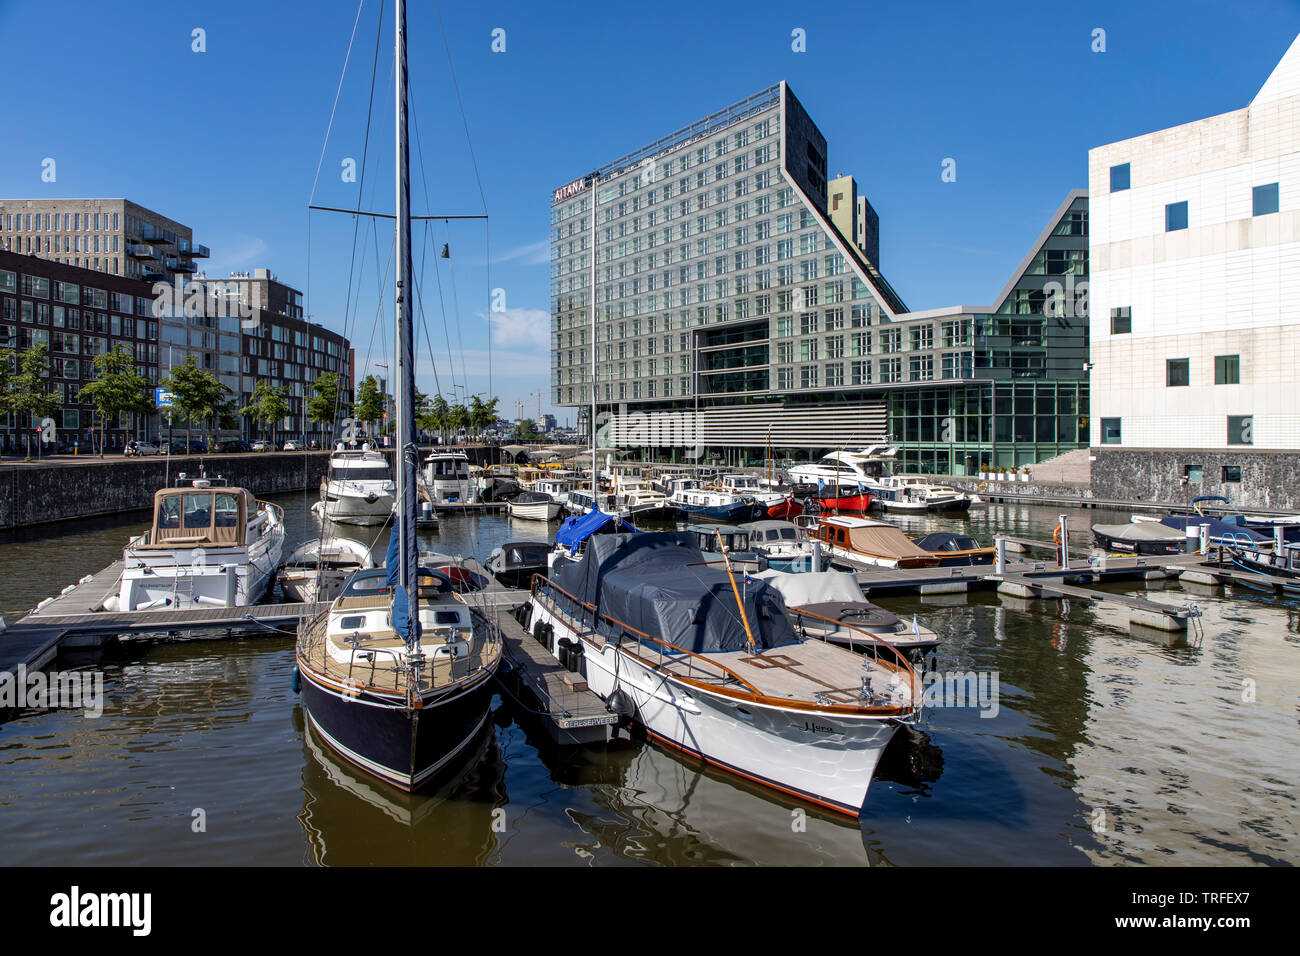 Amsterdam, Netherlands, Idock Island house complex, former Westerdoksdijks, a modern area of various office, residential and administrative buildings, - Stock Image